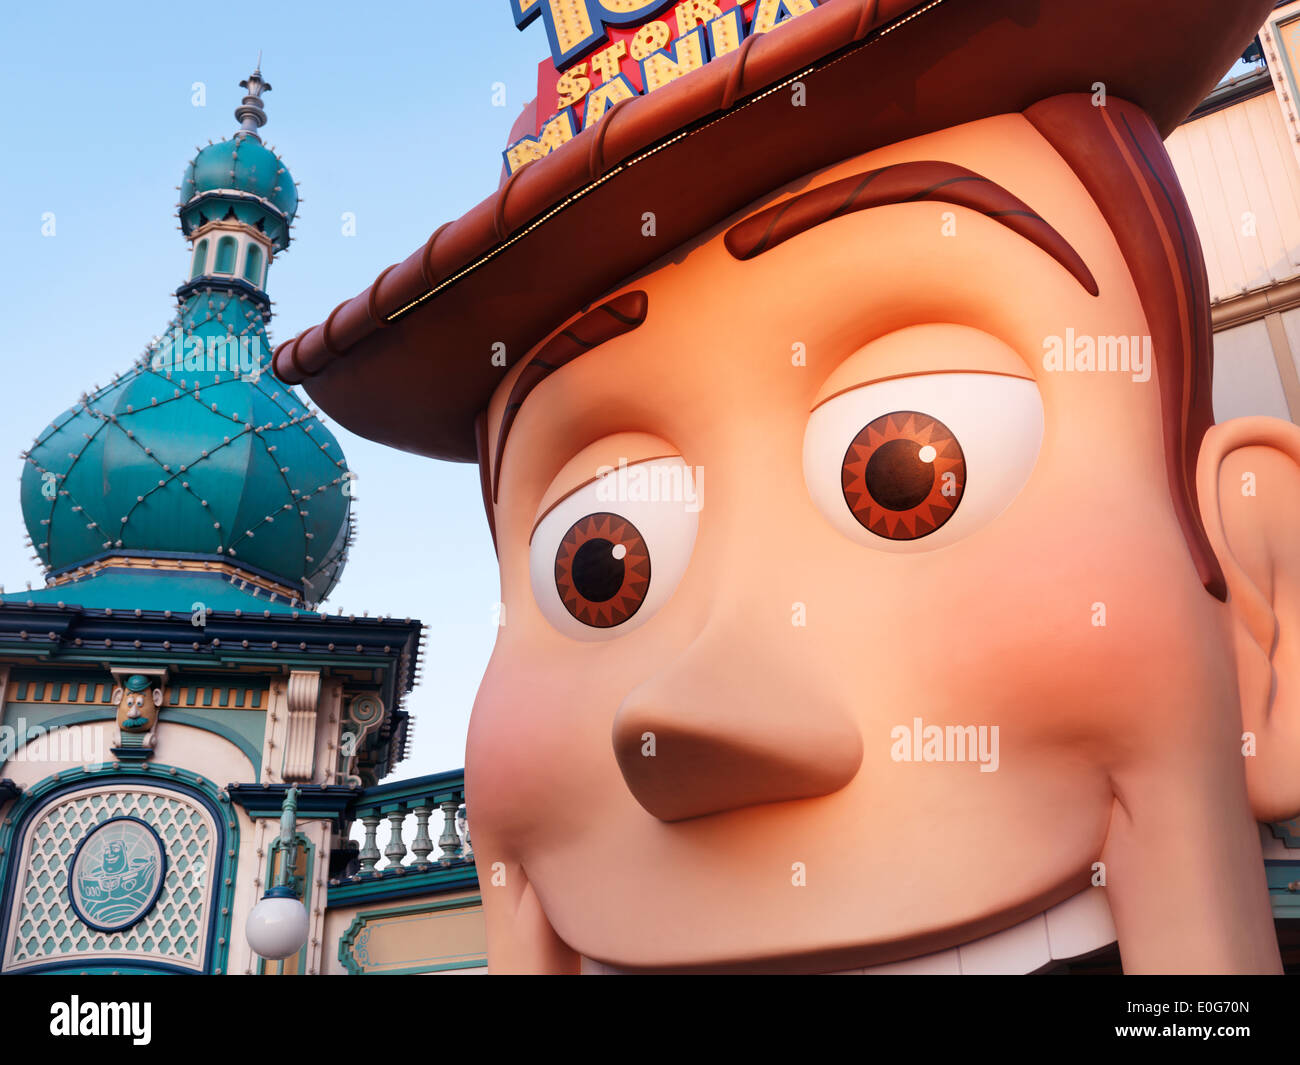 Cowboy Woody face at Toy Story themed attraction at Toyville trolley park, Tokyo Disneysea. Japan. - Stock Image